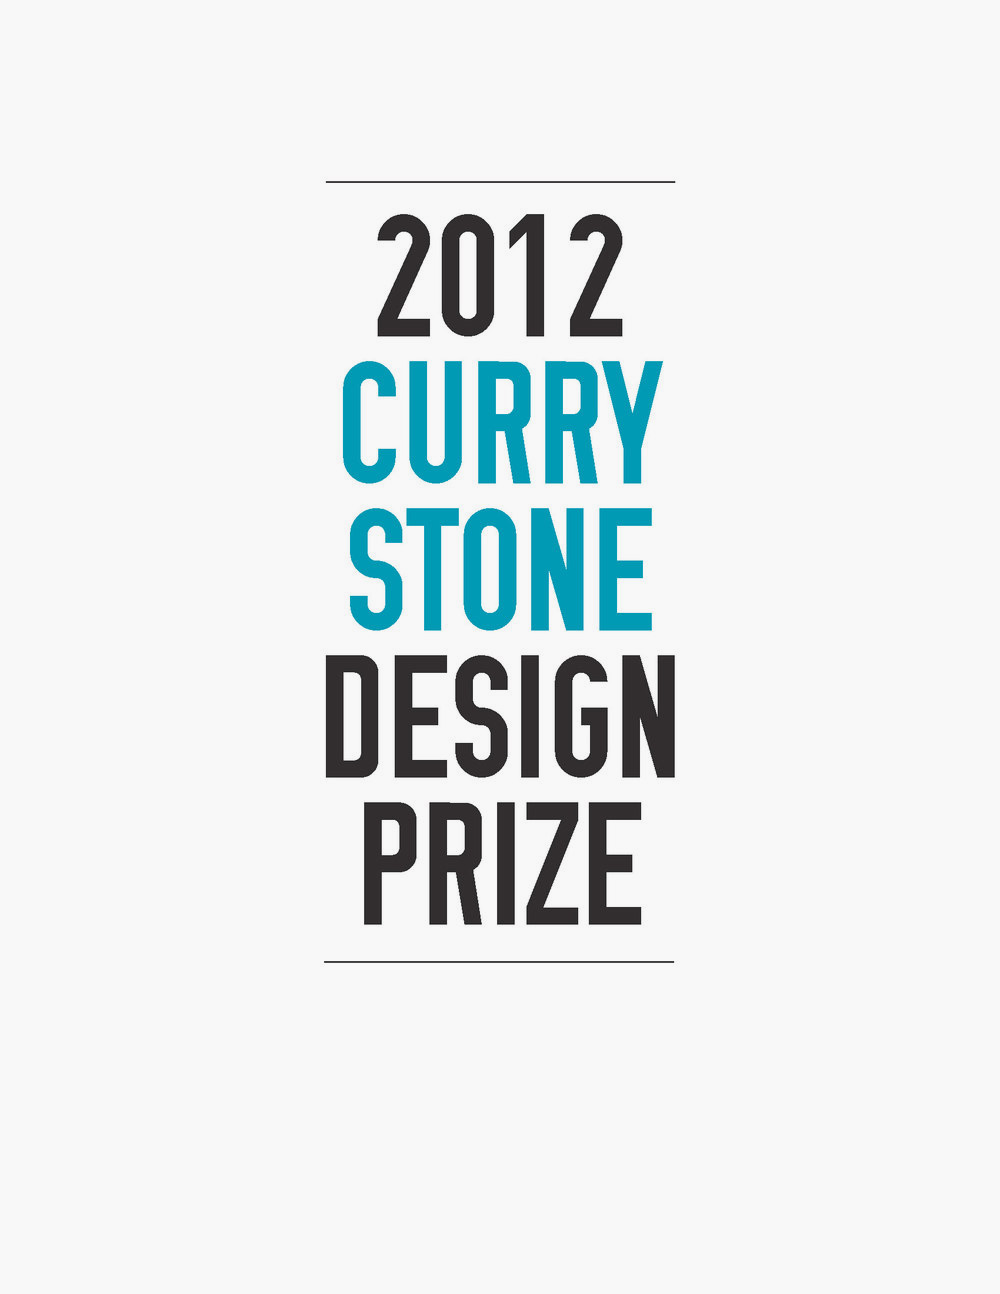 Book Design, Curry Stone Design Prize